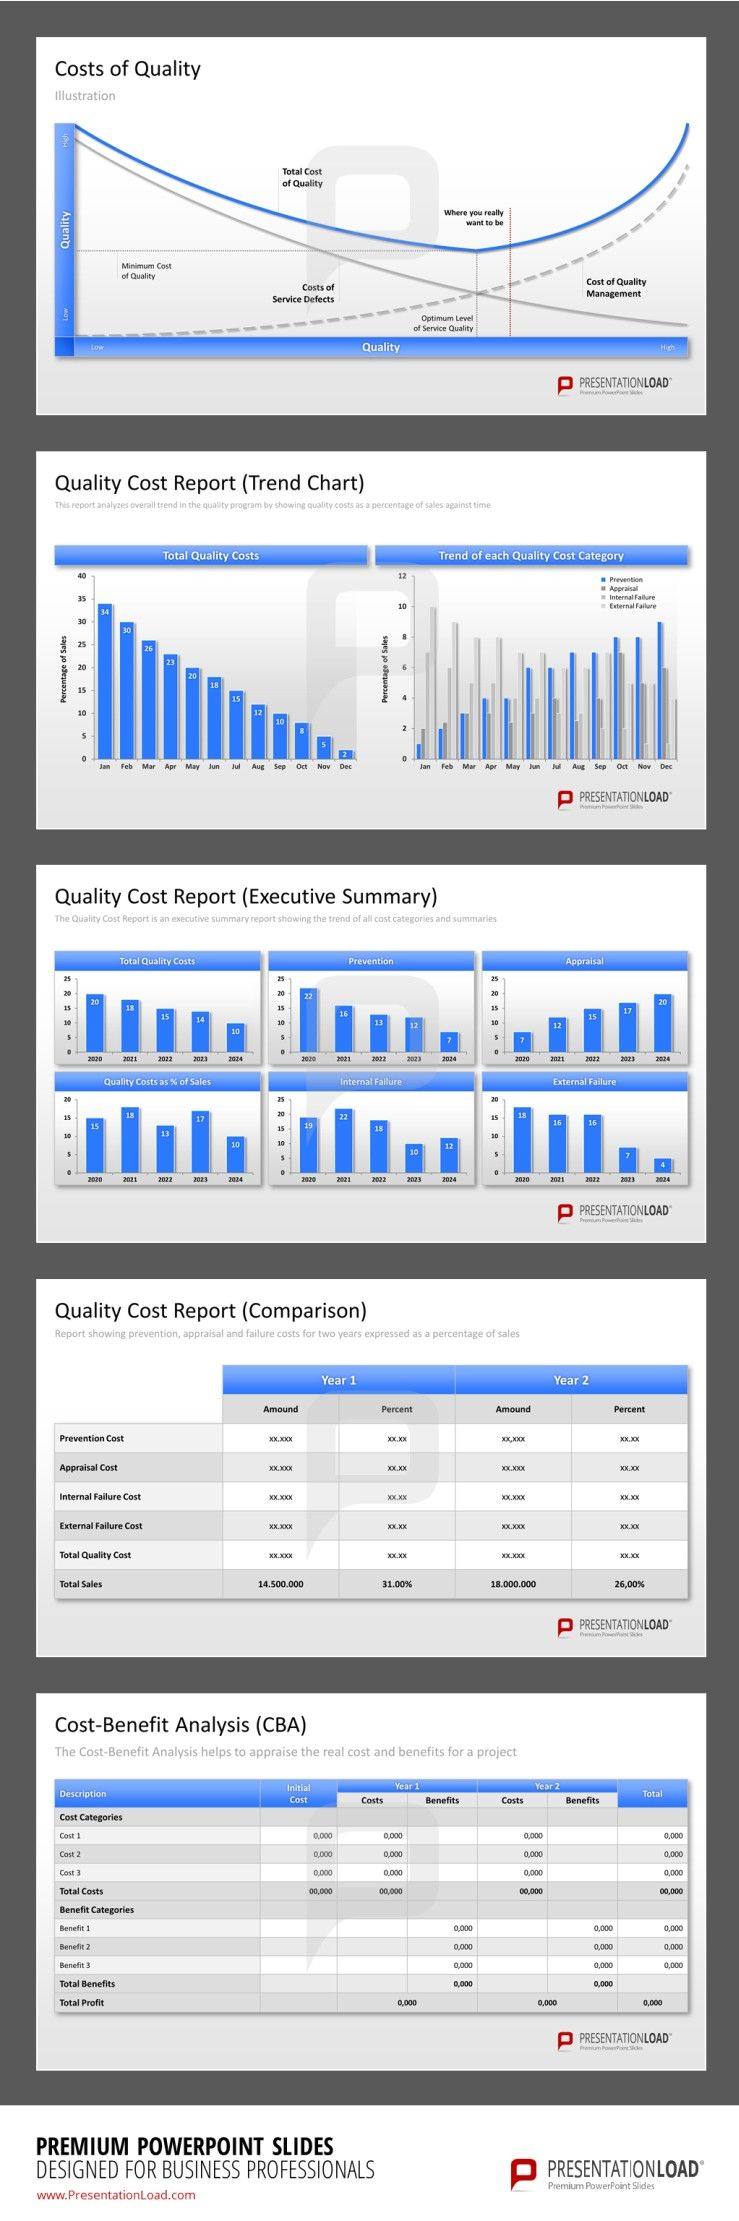 TotalQuality Management Powerpoint Templates To Keep An Eye On